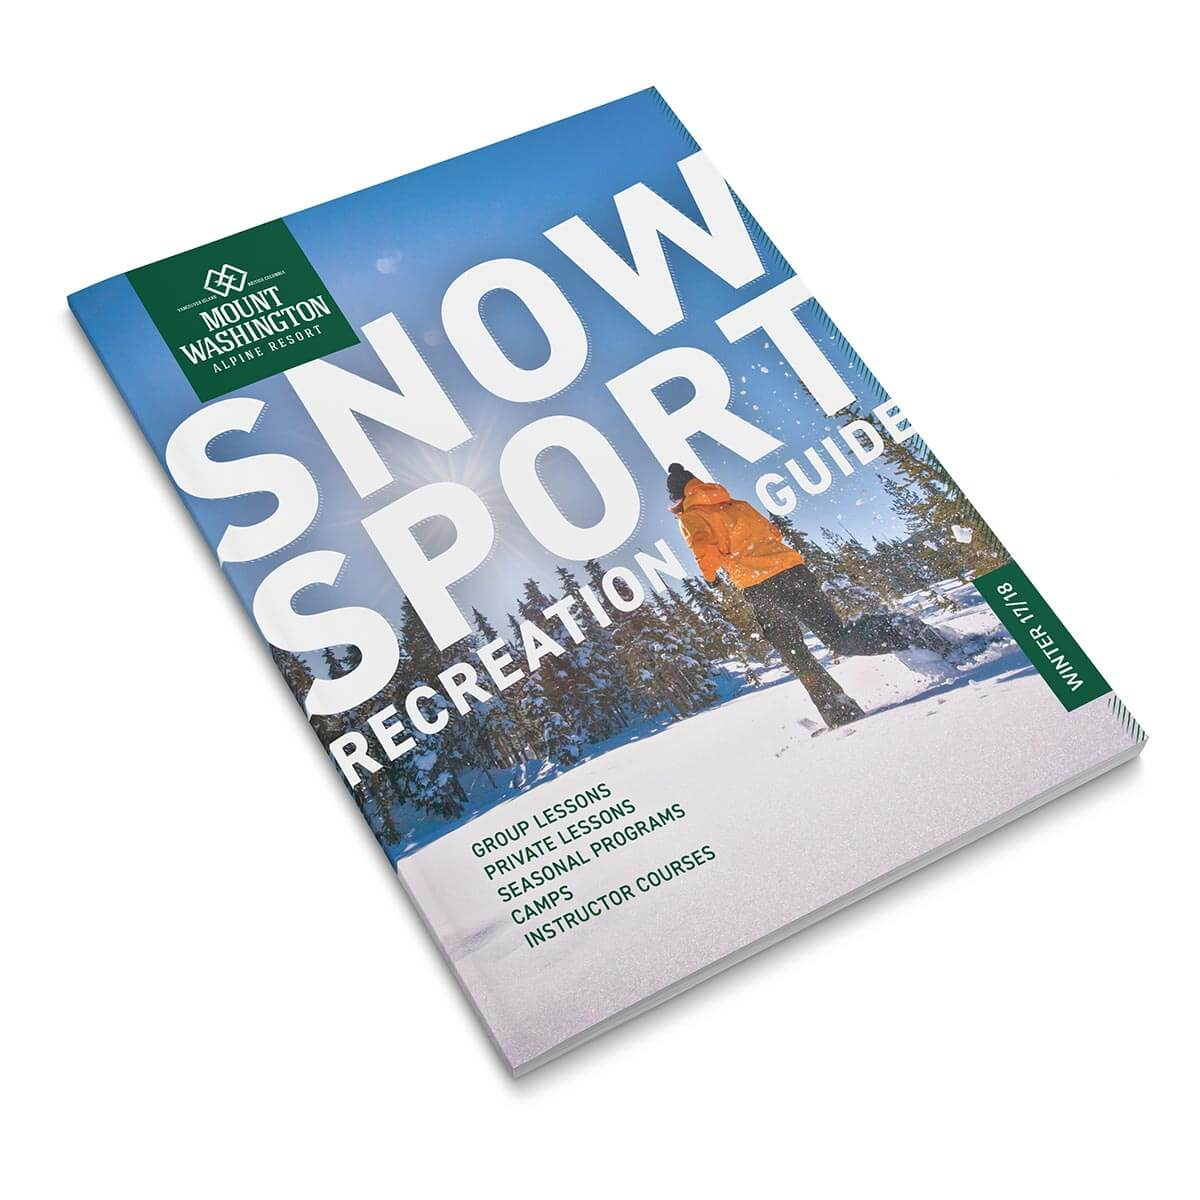 Mount Washington Recreation Guide. Rachel Teresa Park, freelance graphic designer in Victoria, BC